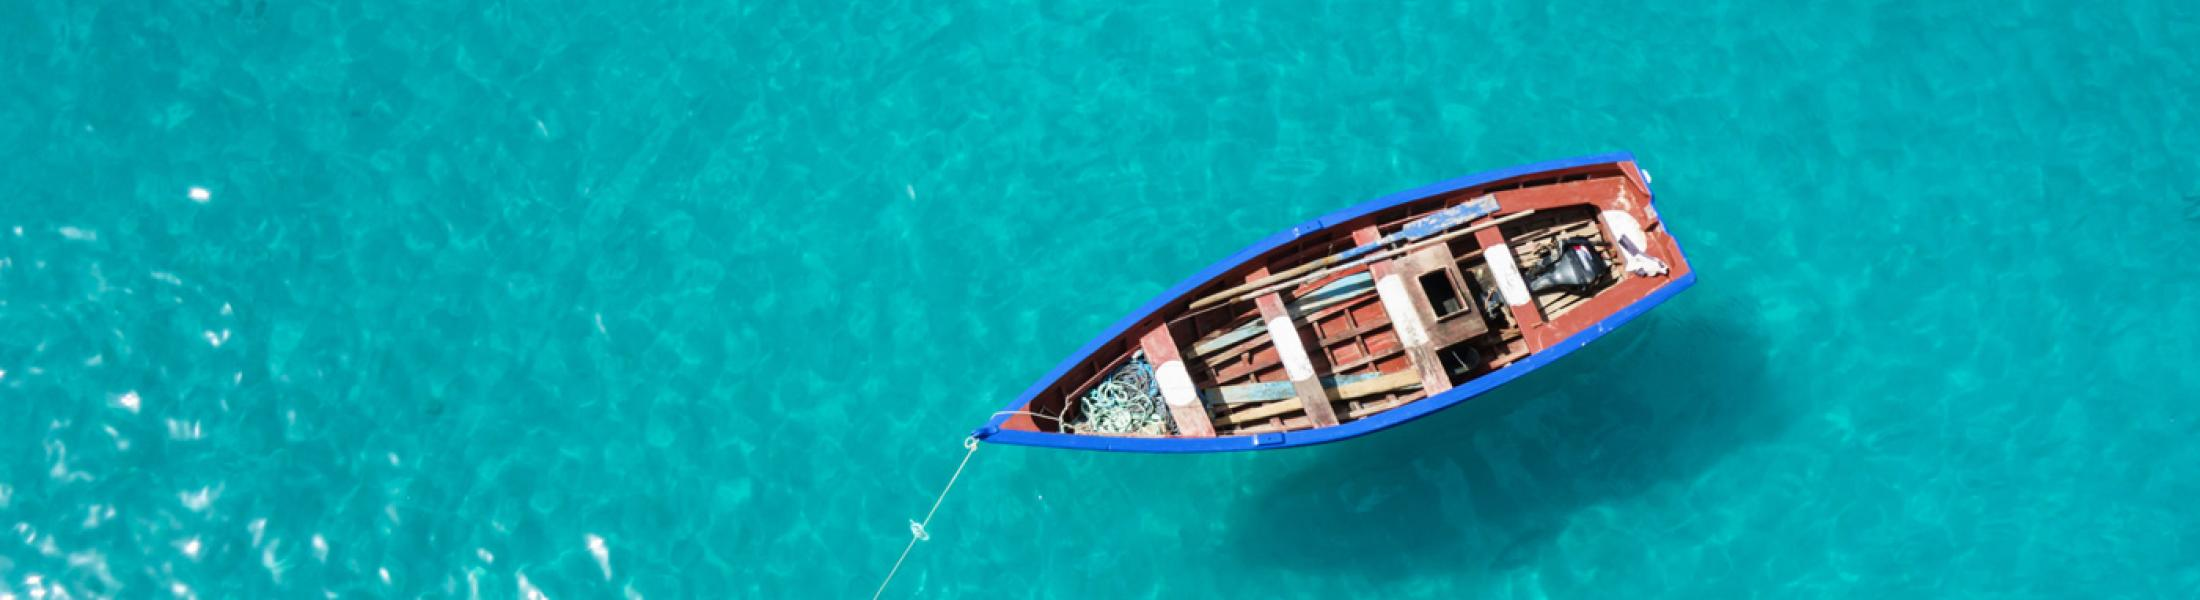 Aerial image of a small fishing boat floating in bright turquoise water.